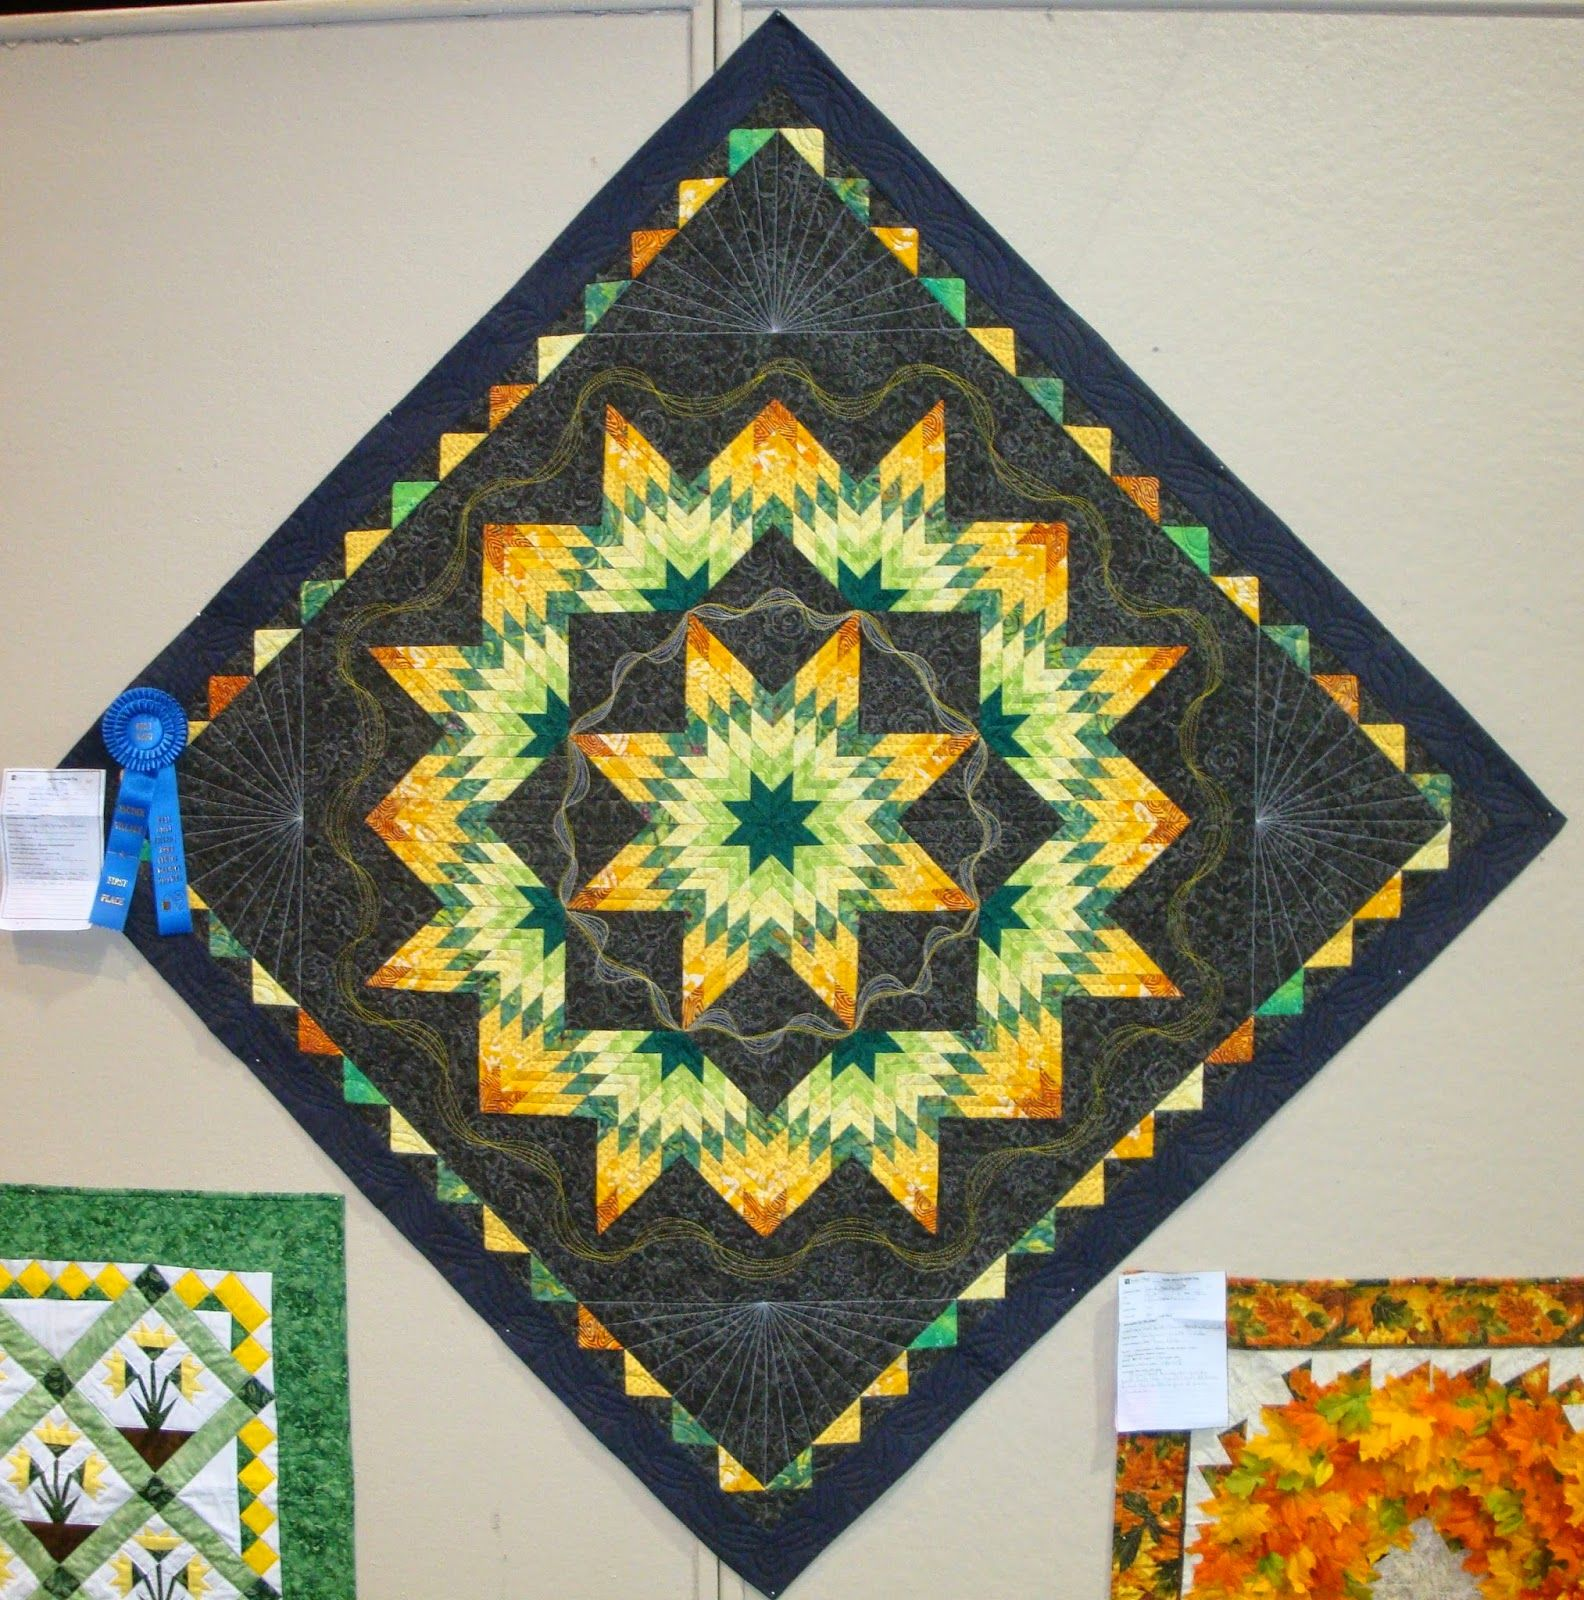 FABRIC THERAPY: Sauder Village Quilt Show: Part Three... | Lone ... : sauder village quilt show - Adamdwight.com